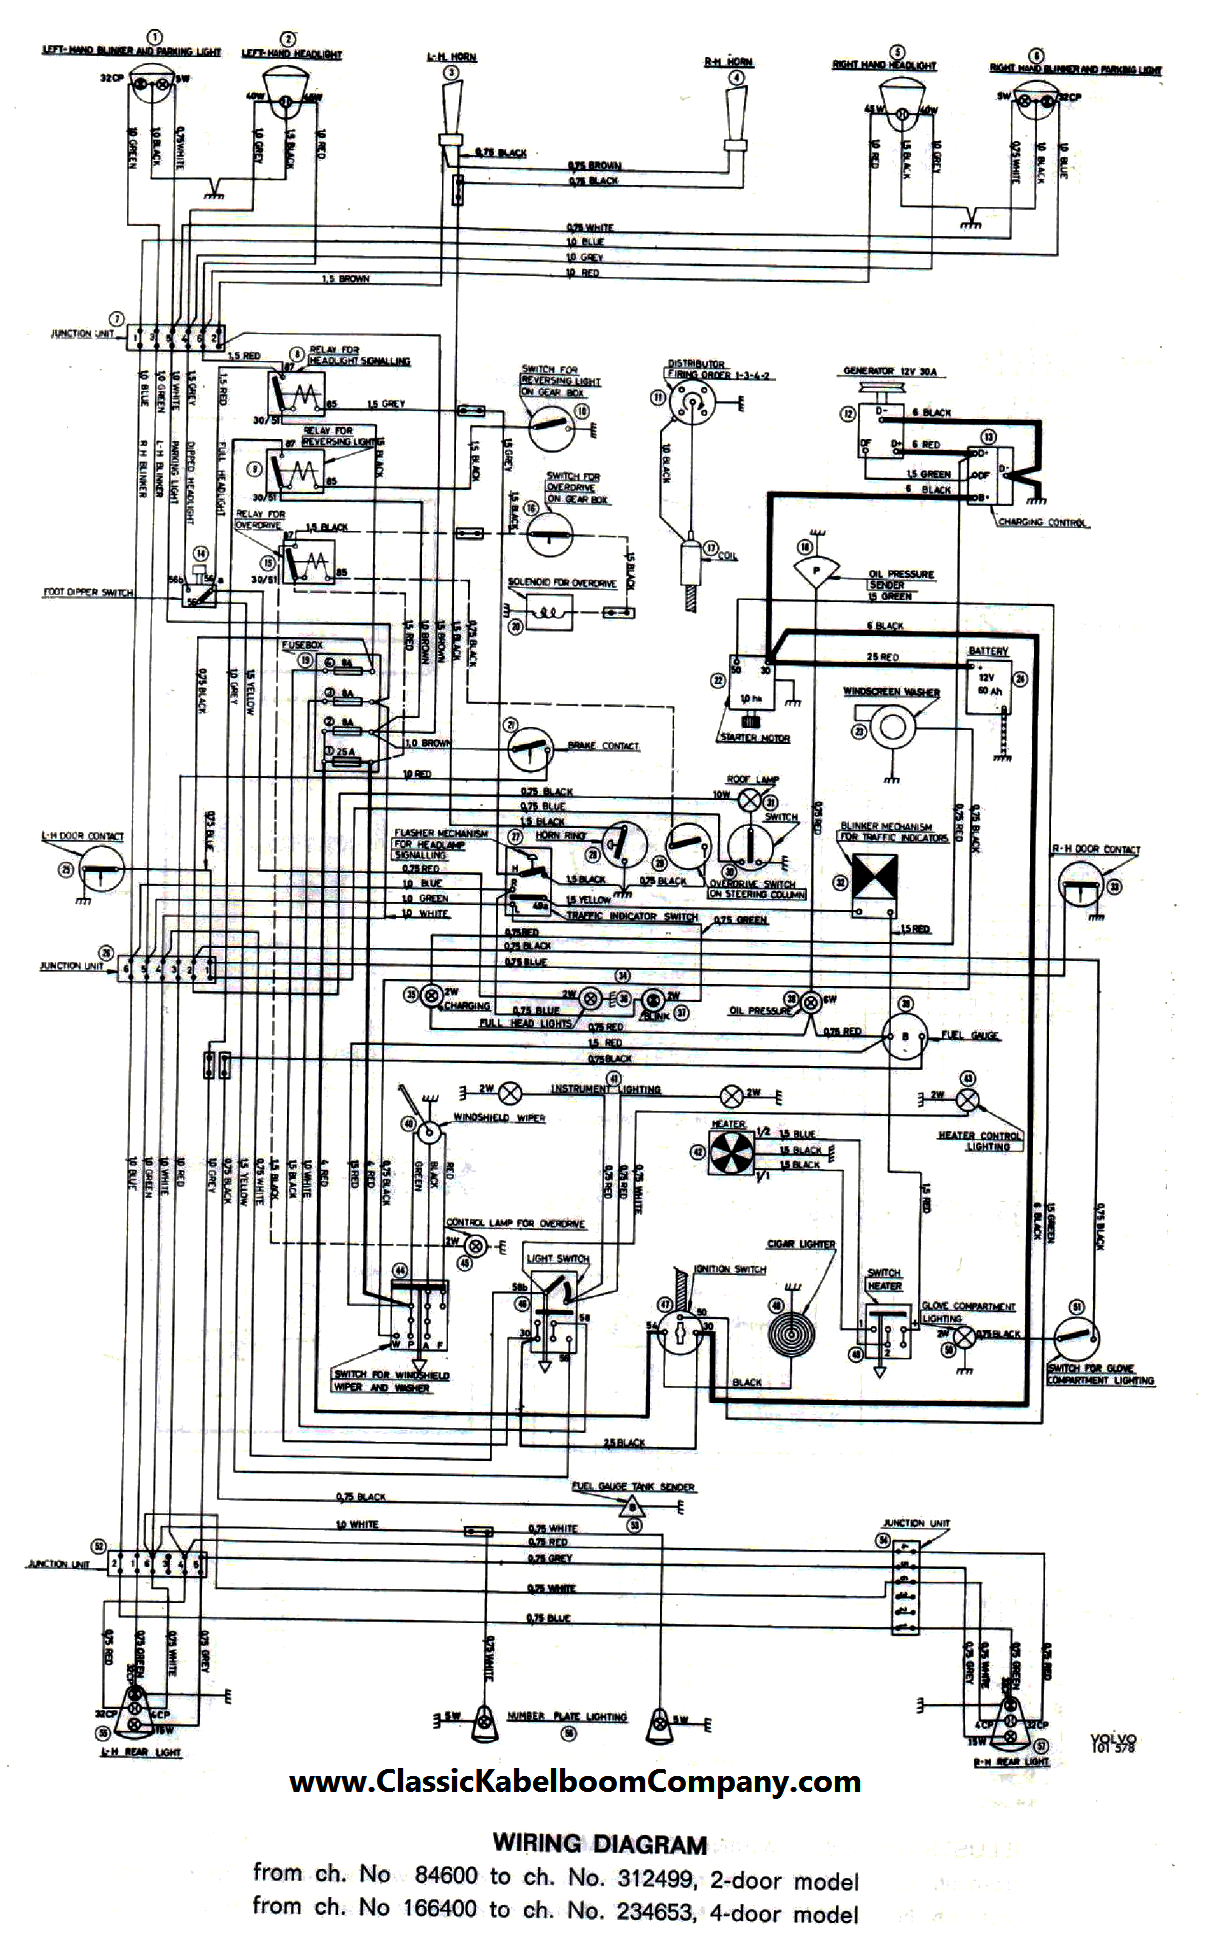 HD9p 6117 also M 380 as well John Deere L100 Parts Diagram moreover John Deere Ltr180 Garden Tractor Spare Parts in addition 70v7f Adjust Transmission Charge Pressure Caterpillar. on john deere parts schematics